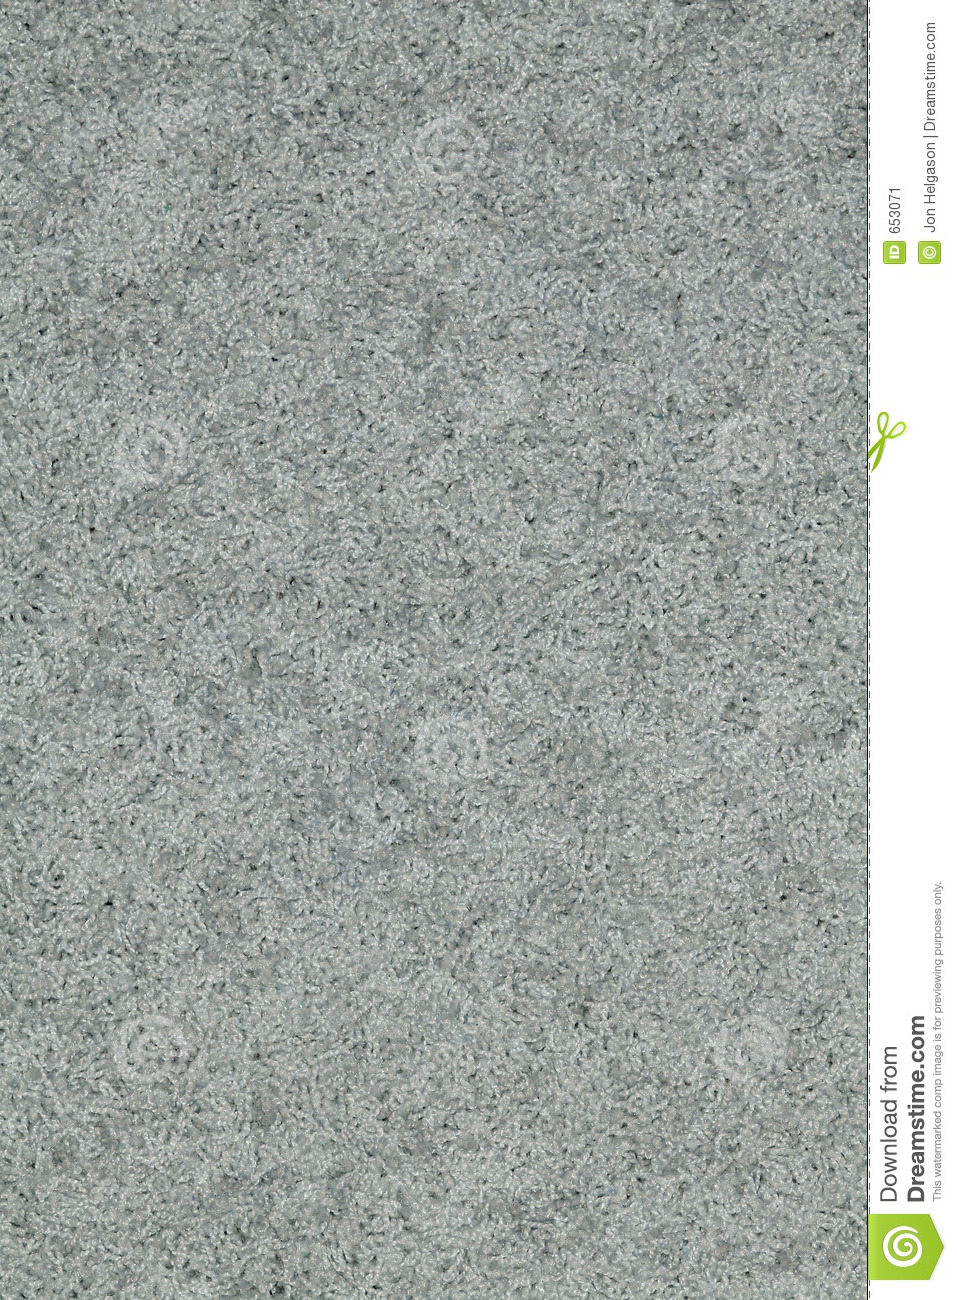 Carpet Texture Stock Image Image Of Living Surface